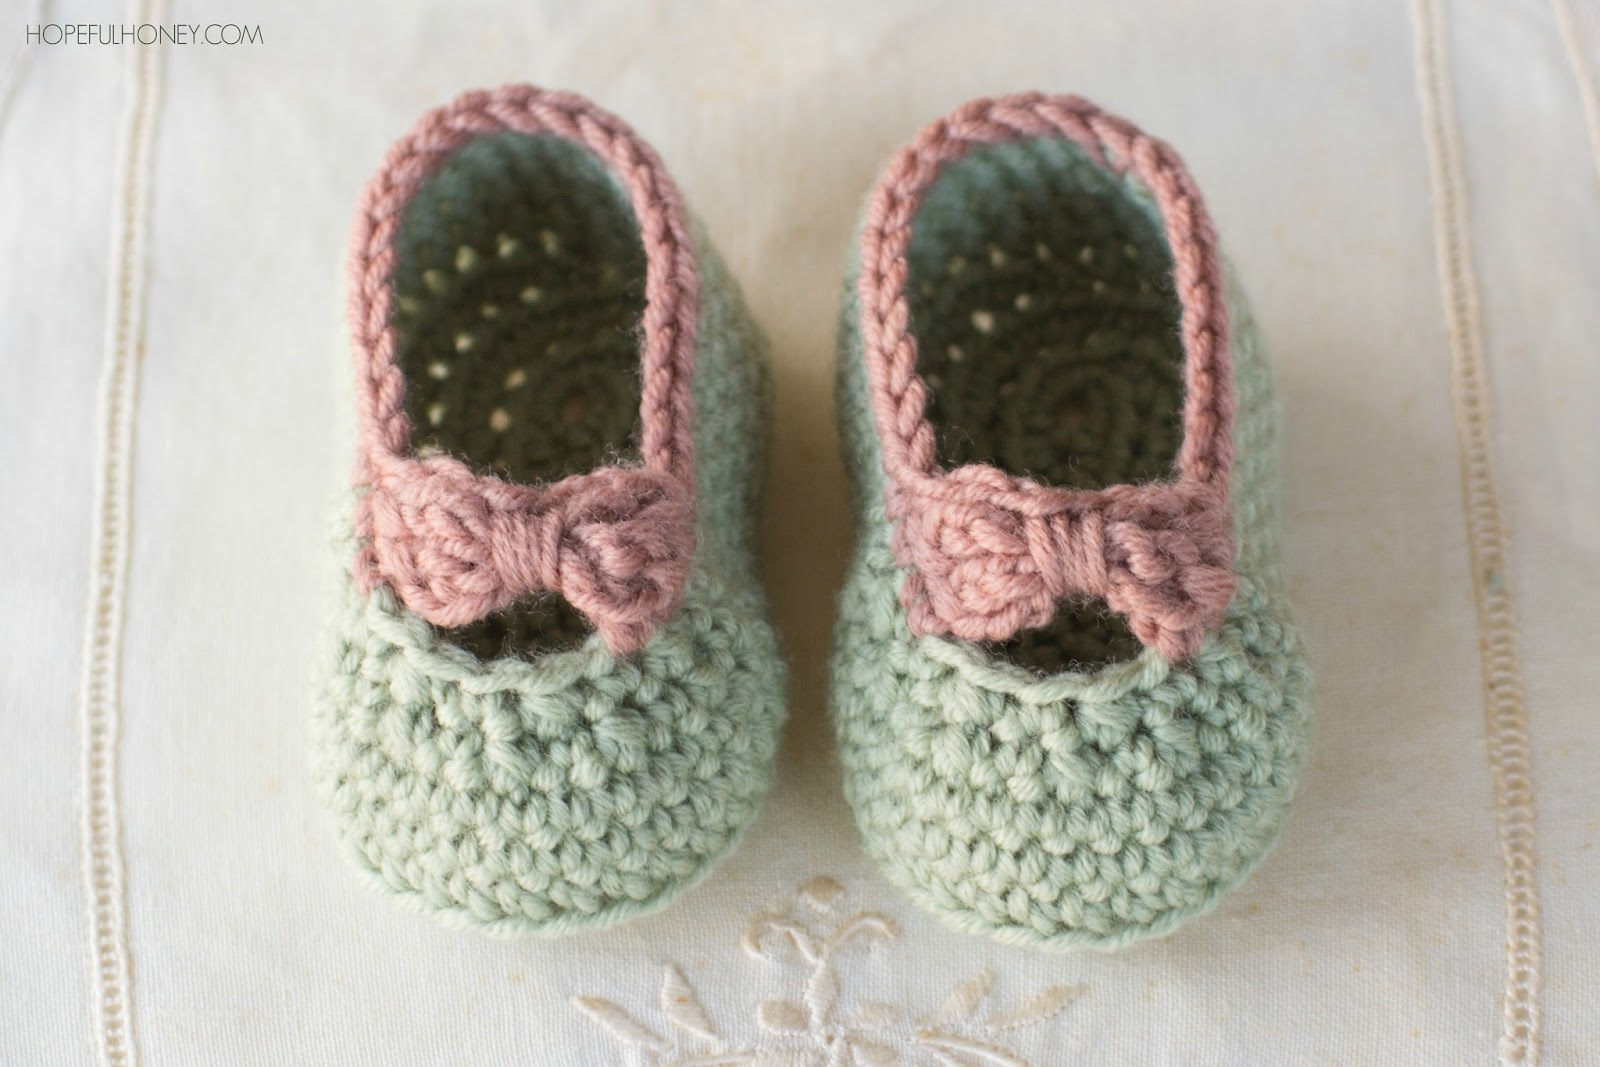 Free Crochet Pattern Of Baby Booties : Hopeful Honey Craft, Crochet, Create: Little Lady Baby ...